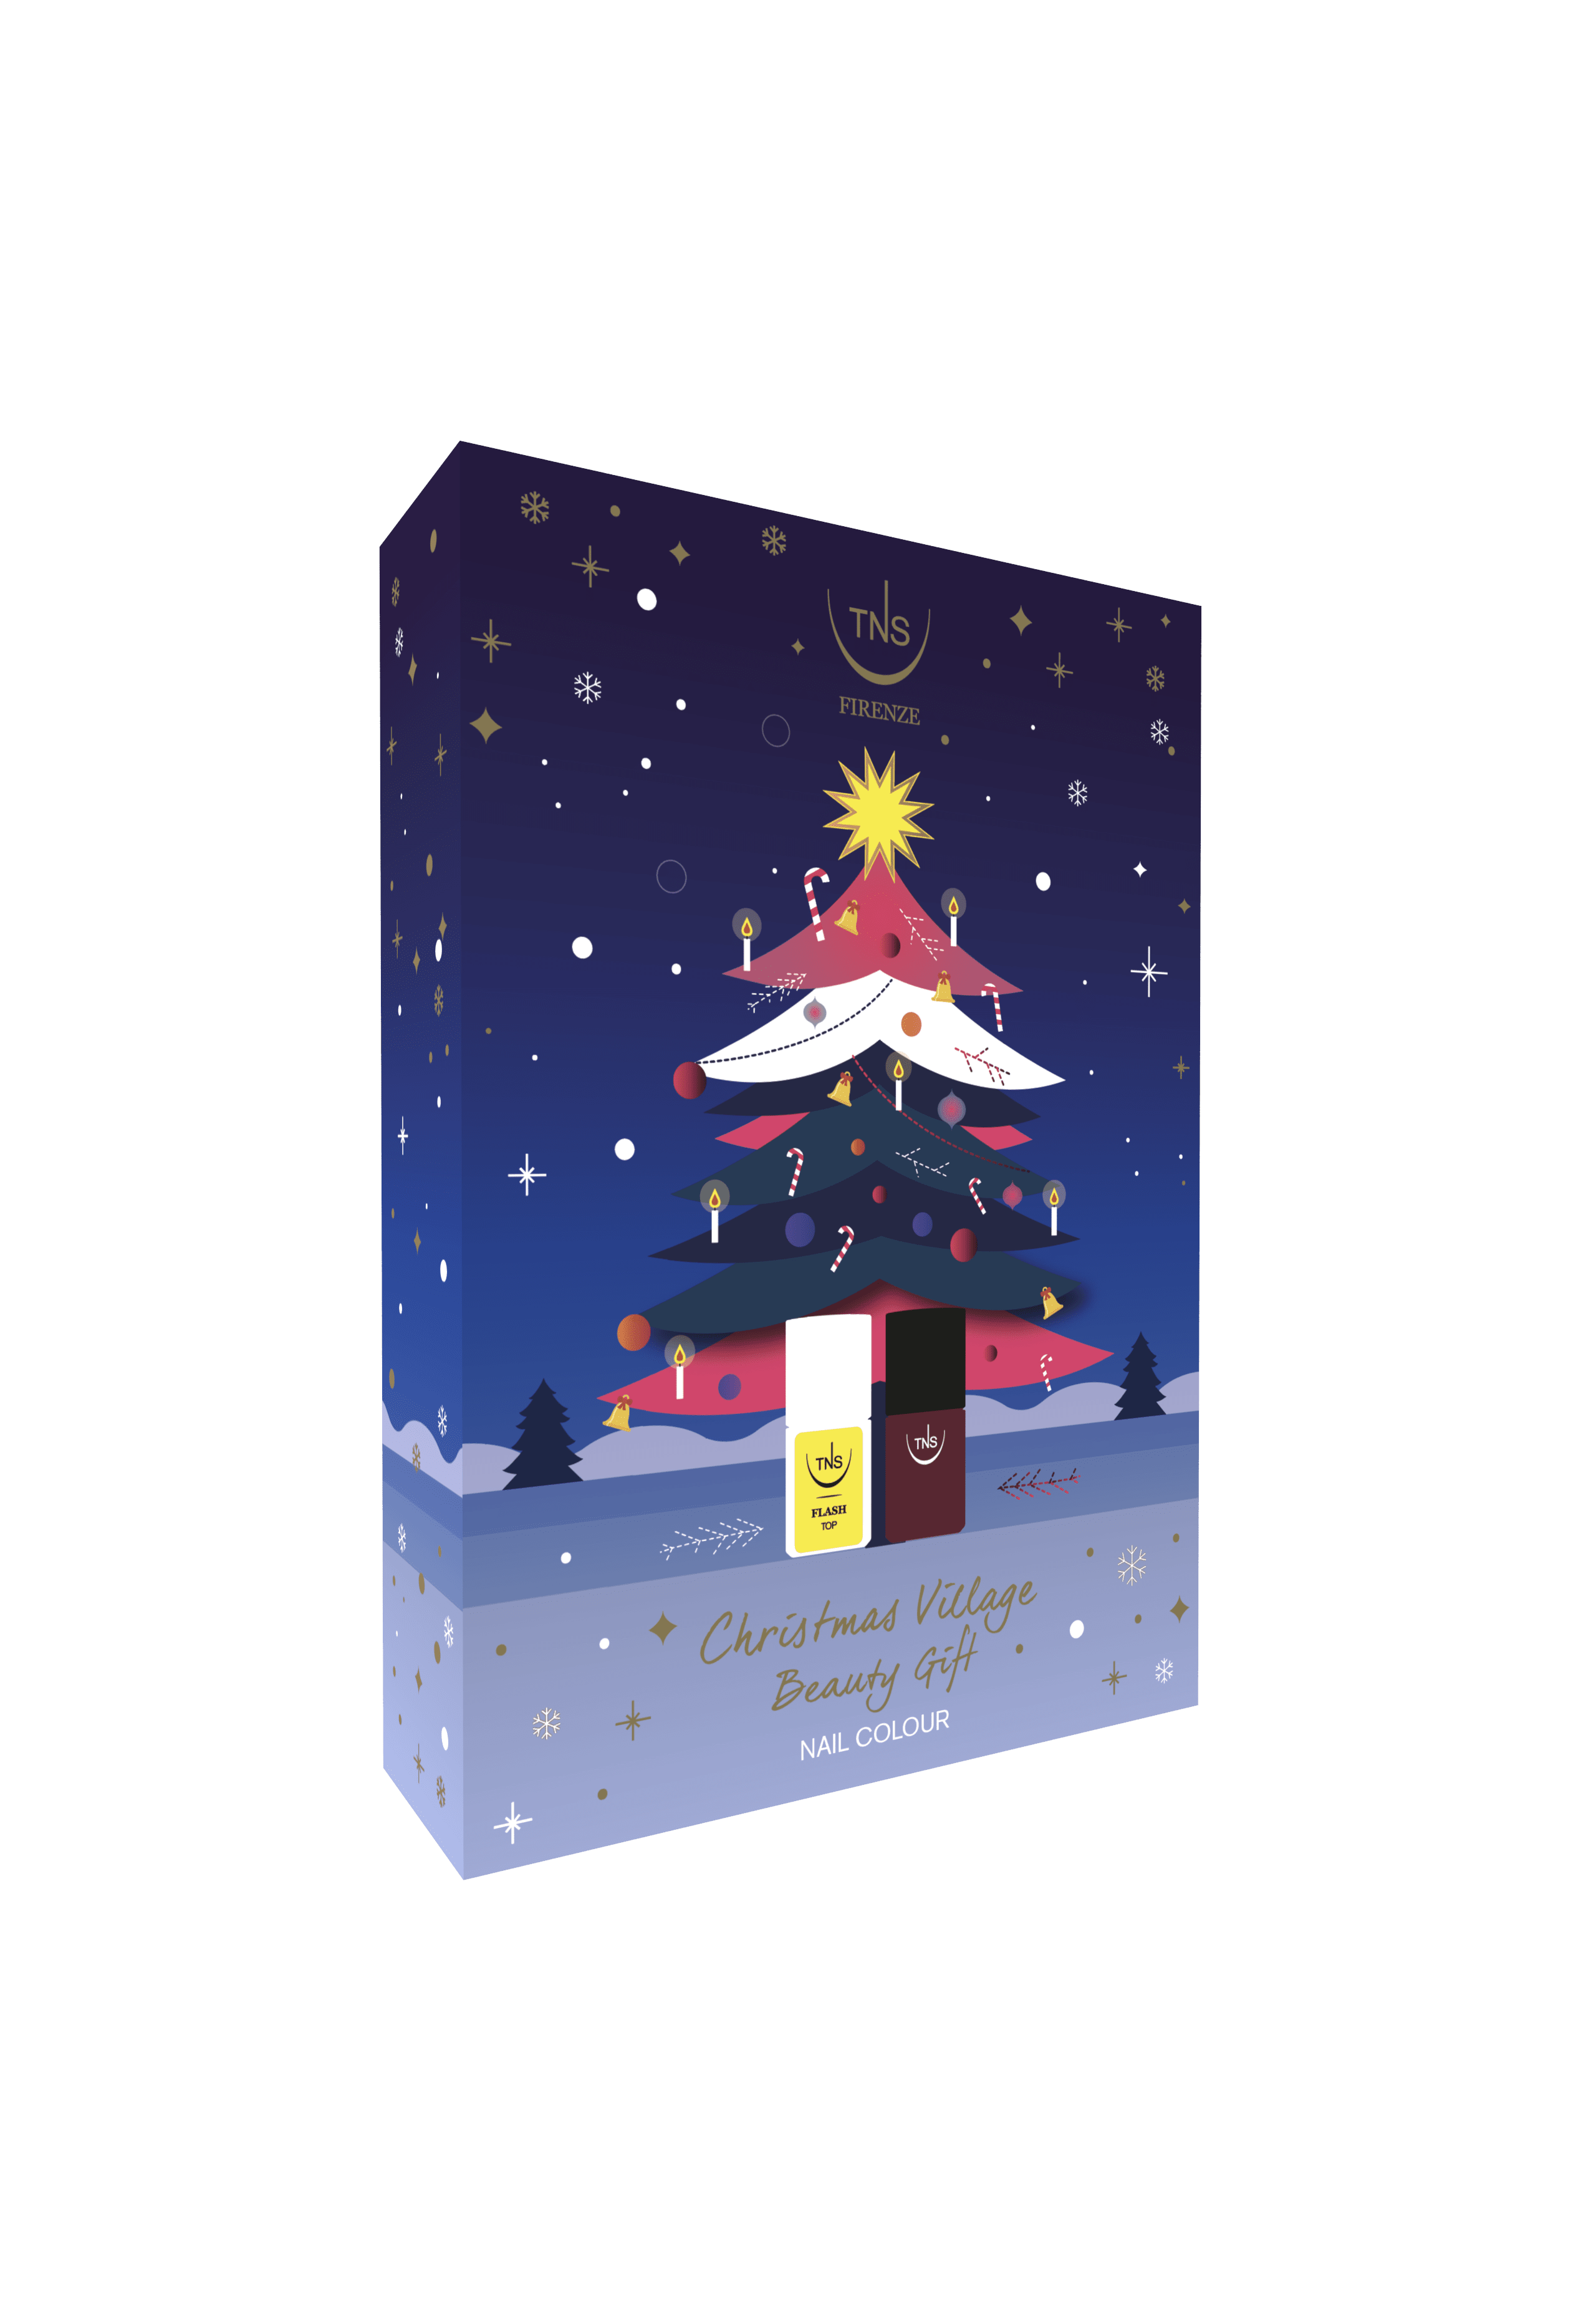 CHRISTMAS BEAUTY GIFT 4